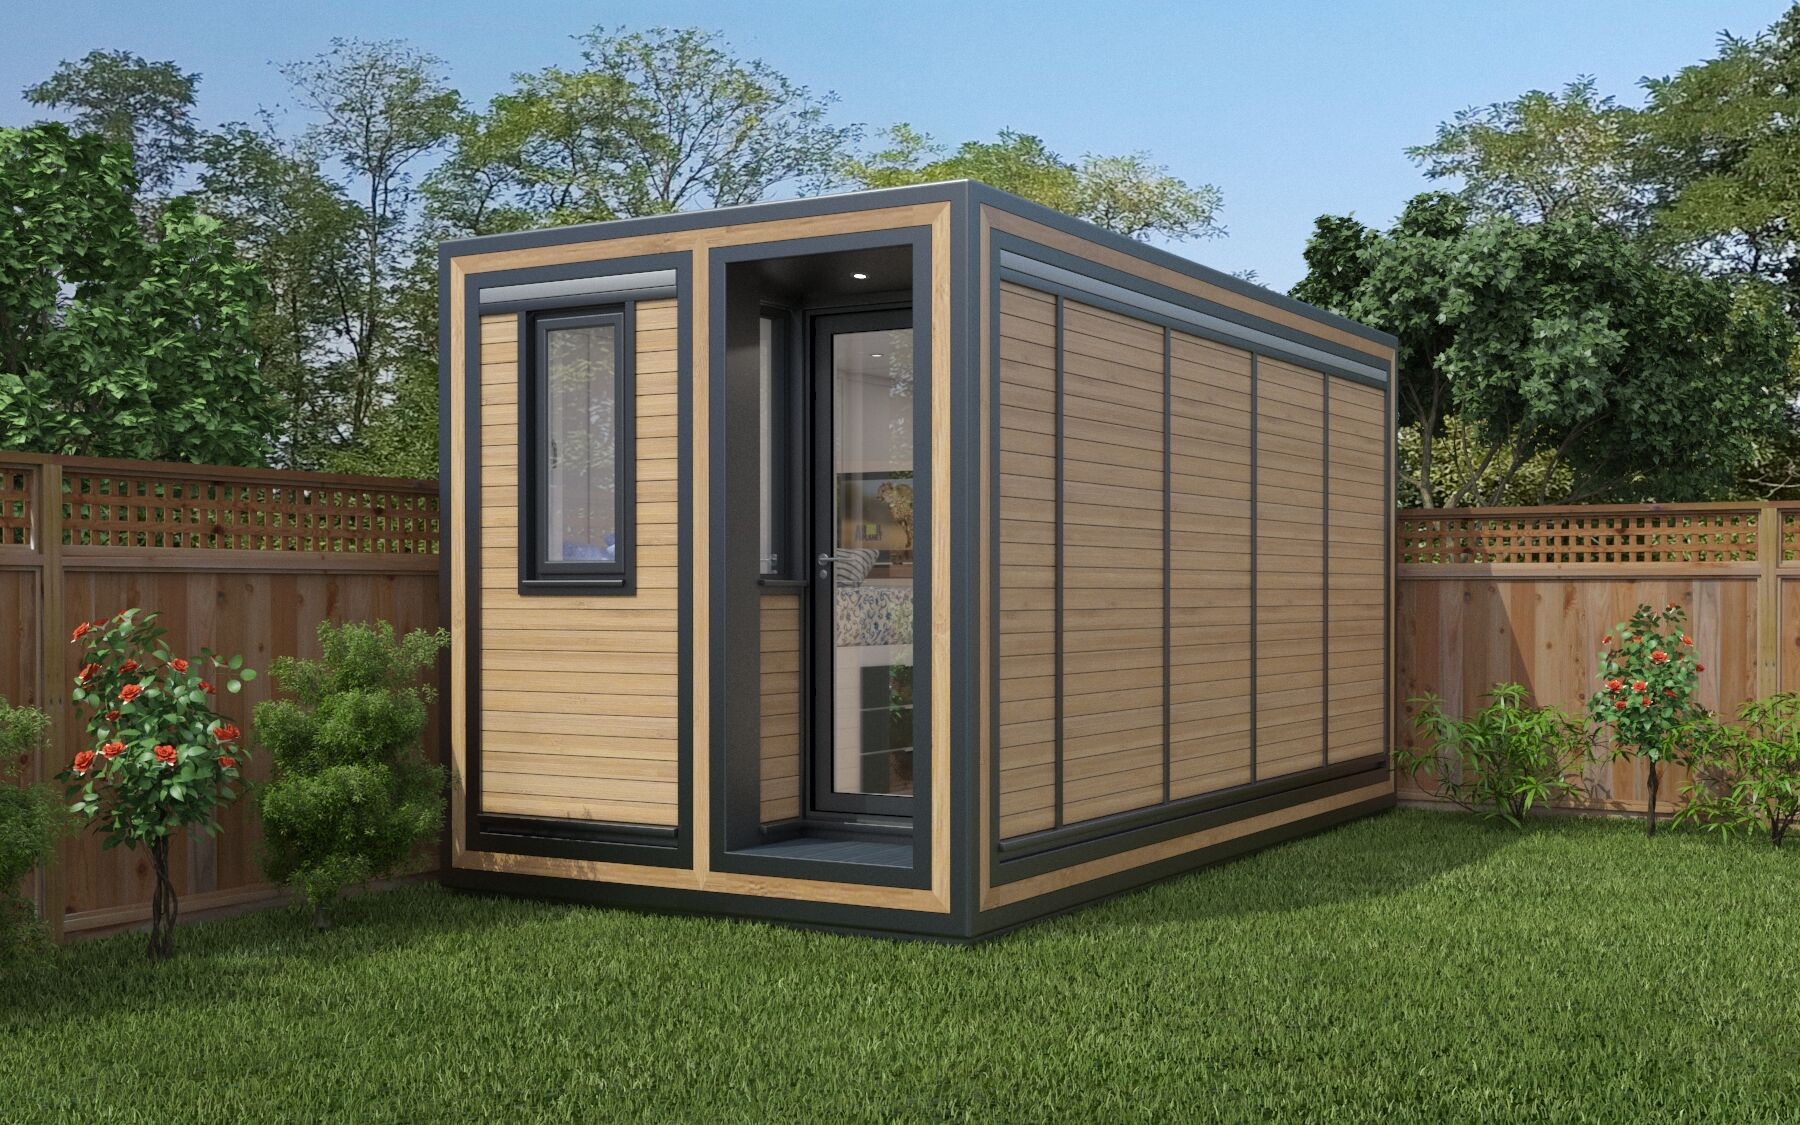 ZEDBOX 245  (2 x 4.5)  Internal Size: 2117x 4817  External Size: 2587 x 5287  Bed Options: Single  Kitchen Options: Micro Kitchen  Wet Room Options: Yes  Portico: Yes  Price:  £22,000    Optional Extras    Request Zedbox Catalogue